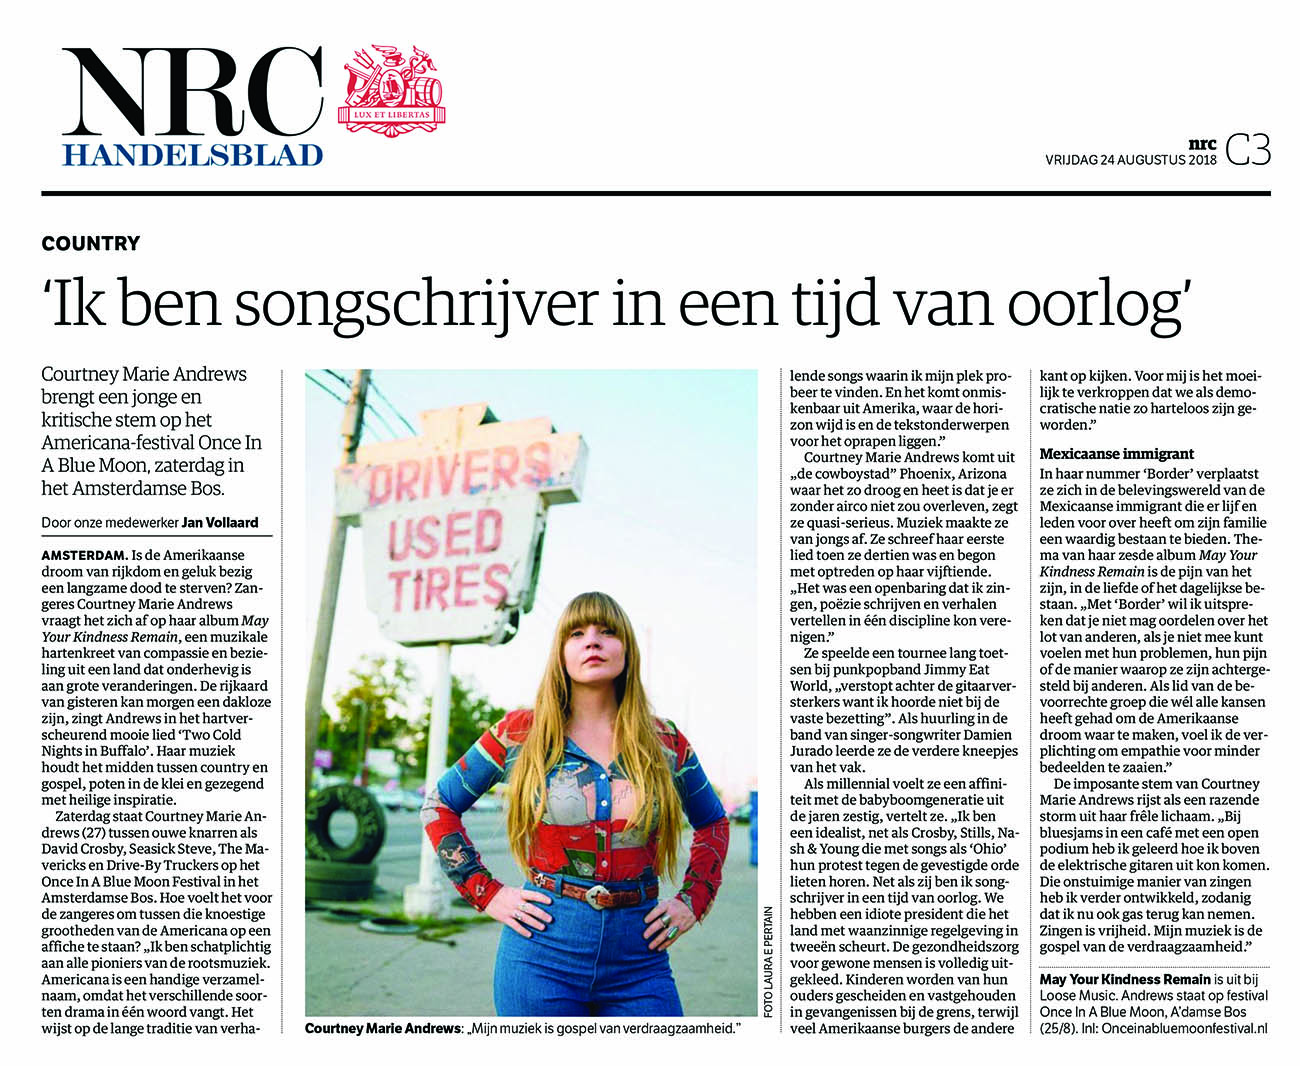 Courtney Marie Andrews - NRC - 24 August 2018